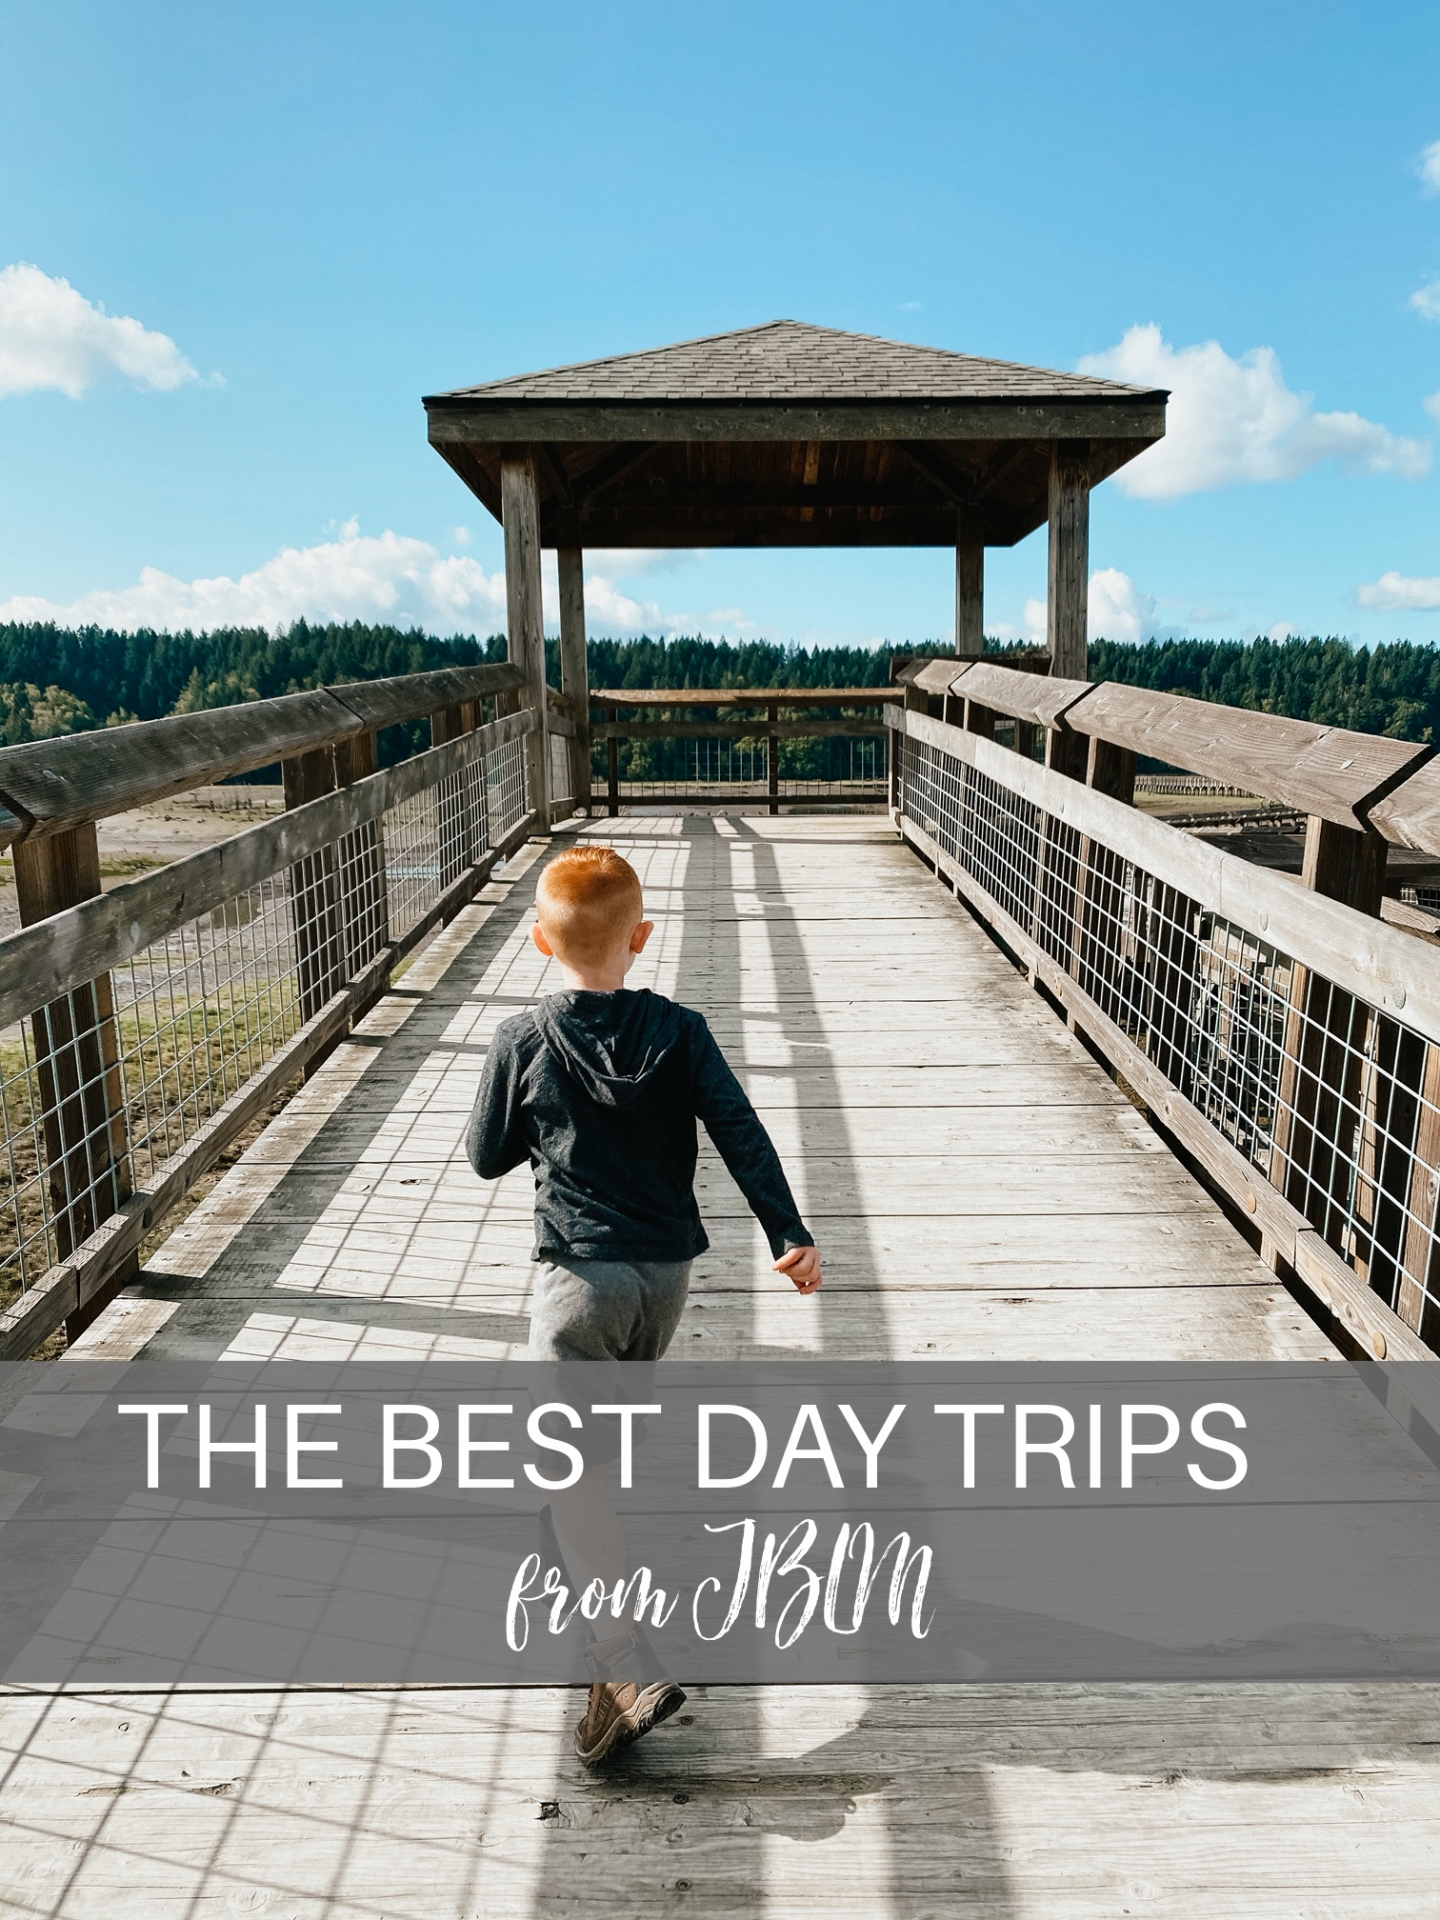 best day trips from jblm